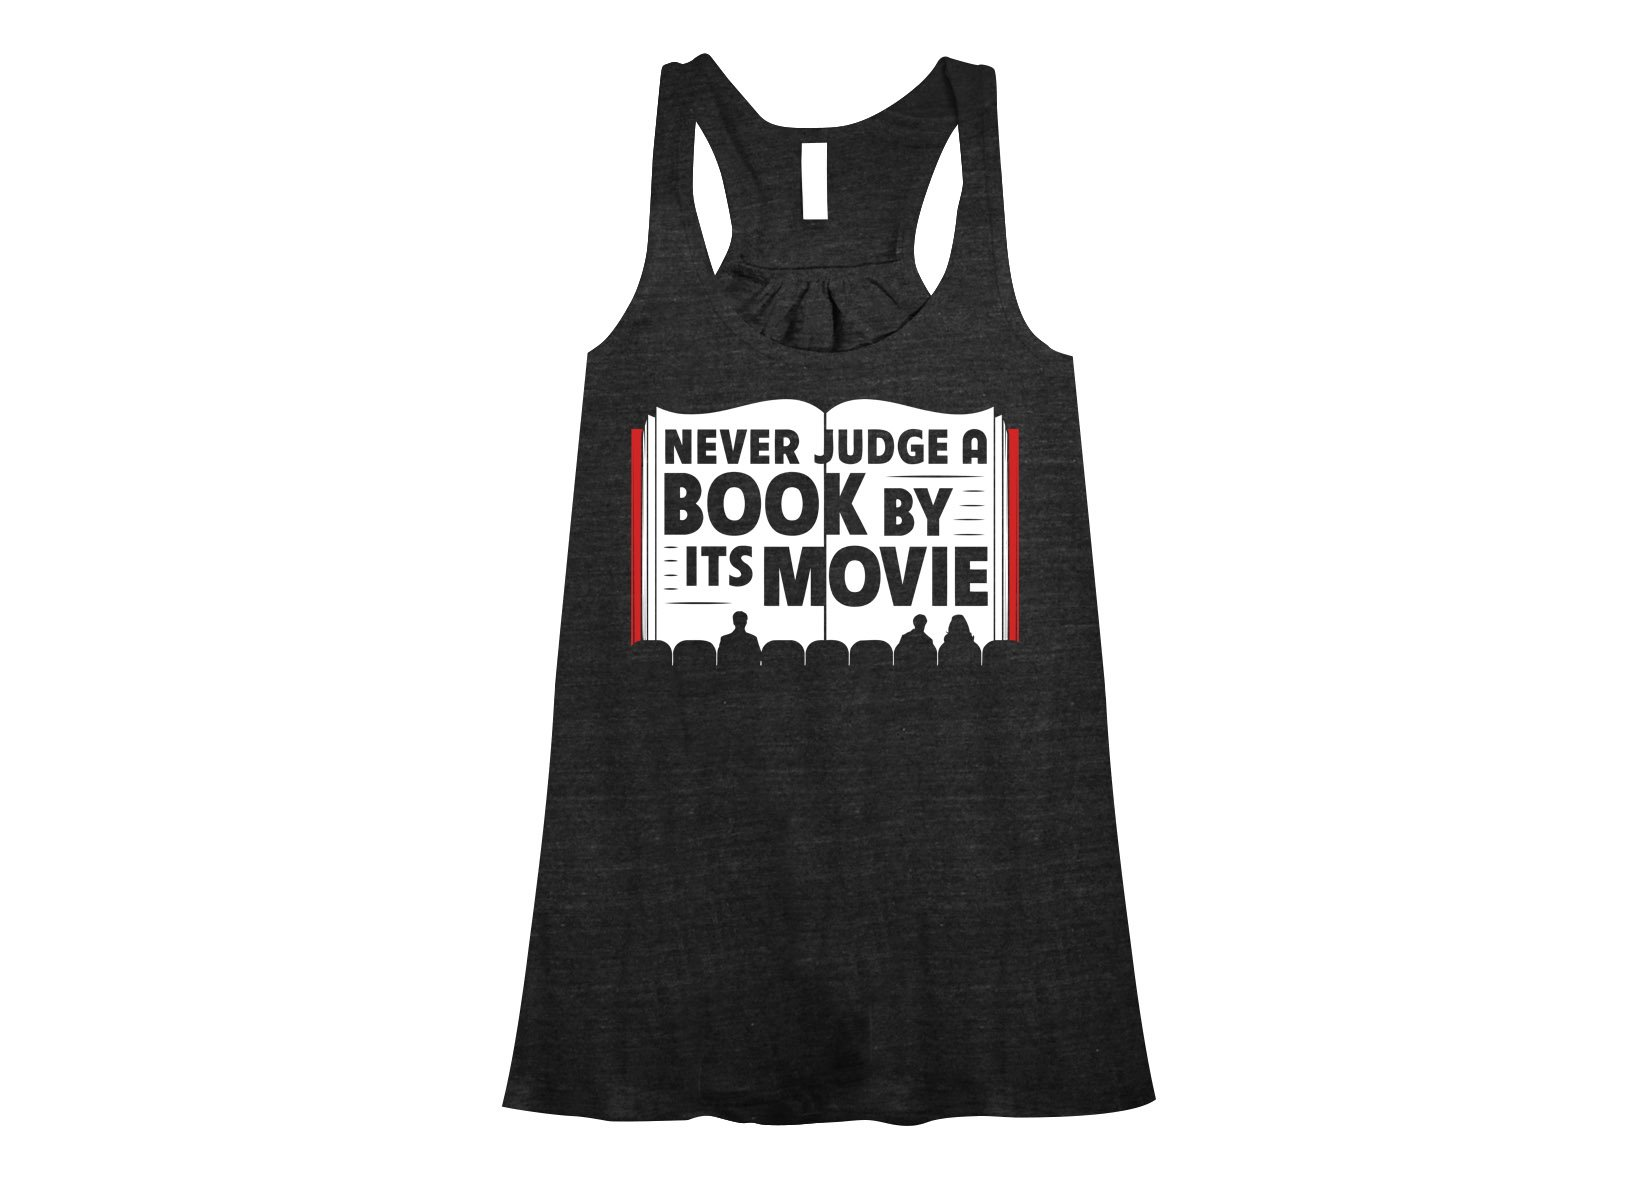 Never Judge A Book By Its Movie on Womens Tanks T-Shirt